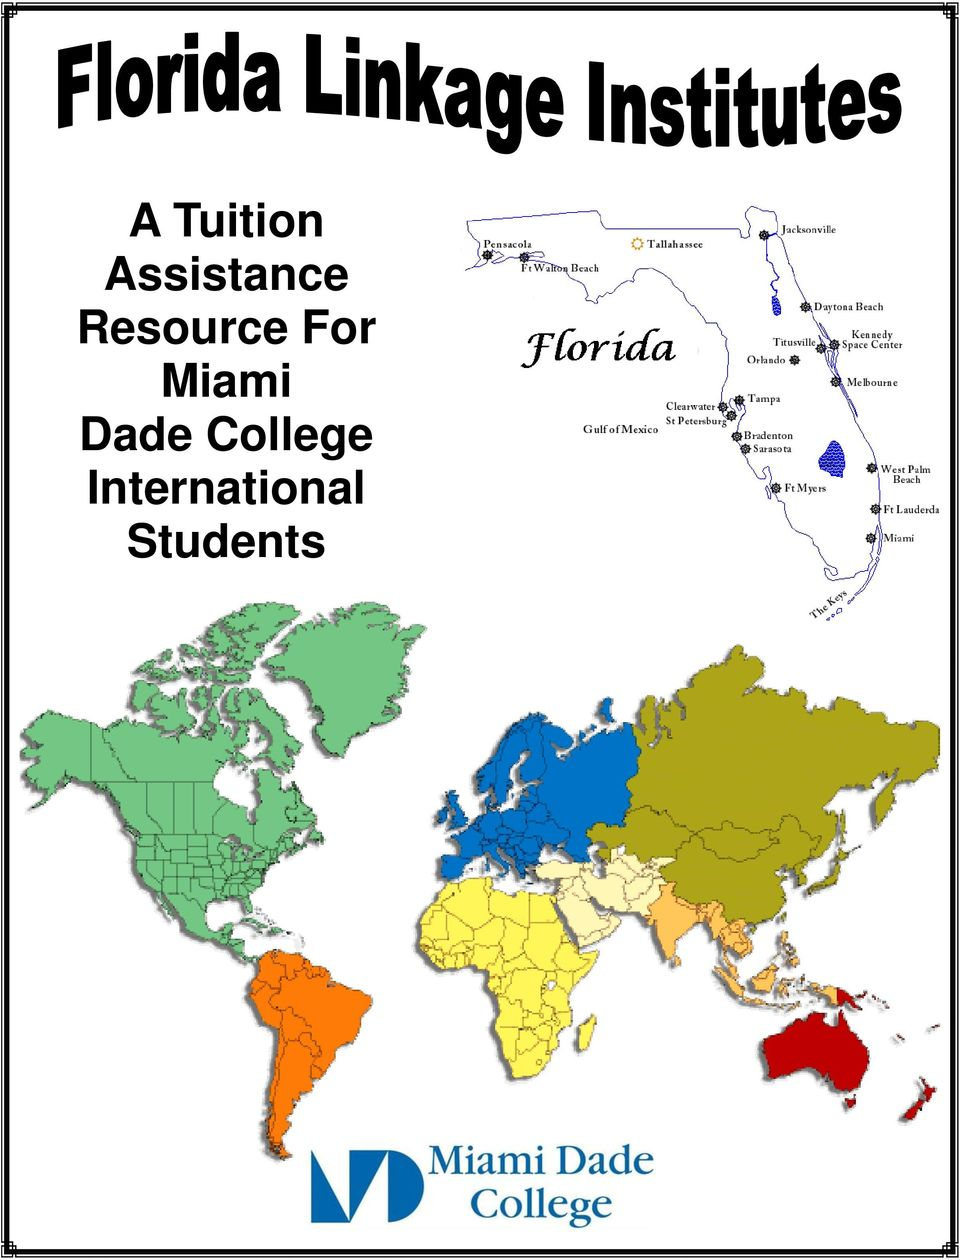 A Tuition Assistance Resource For Miami Dade College